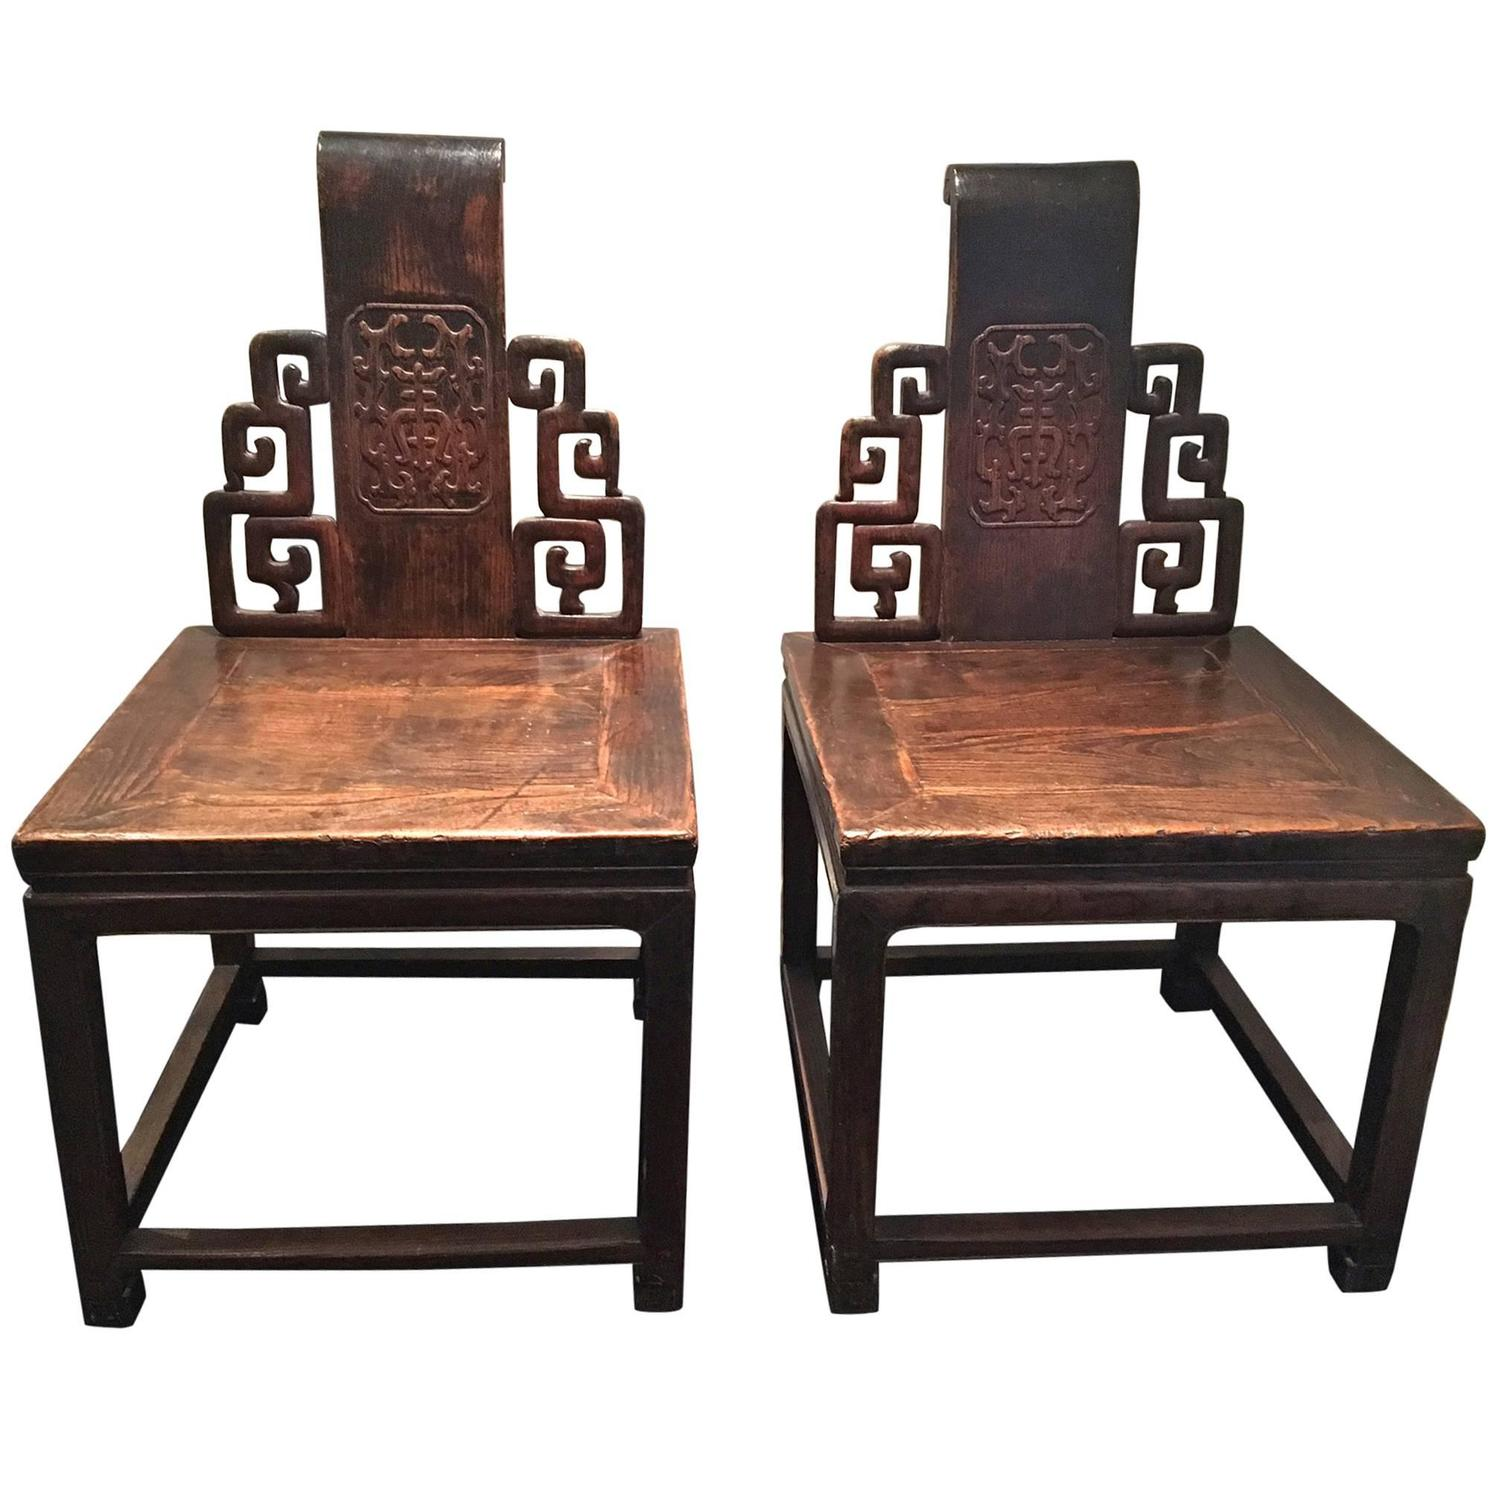 Chinese Chair Pair Of Decorative Chinese Chairs For Sale At 1stdibs